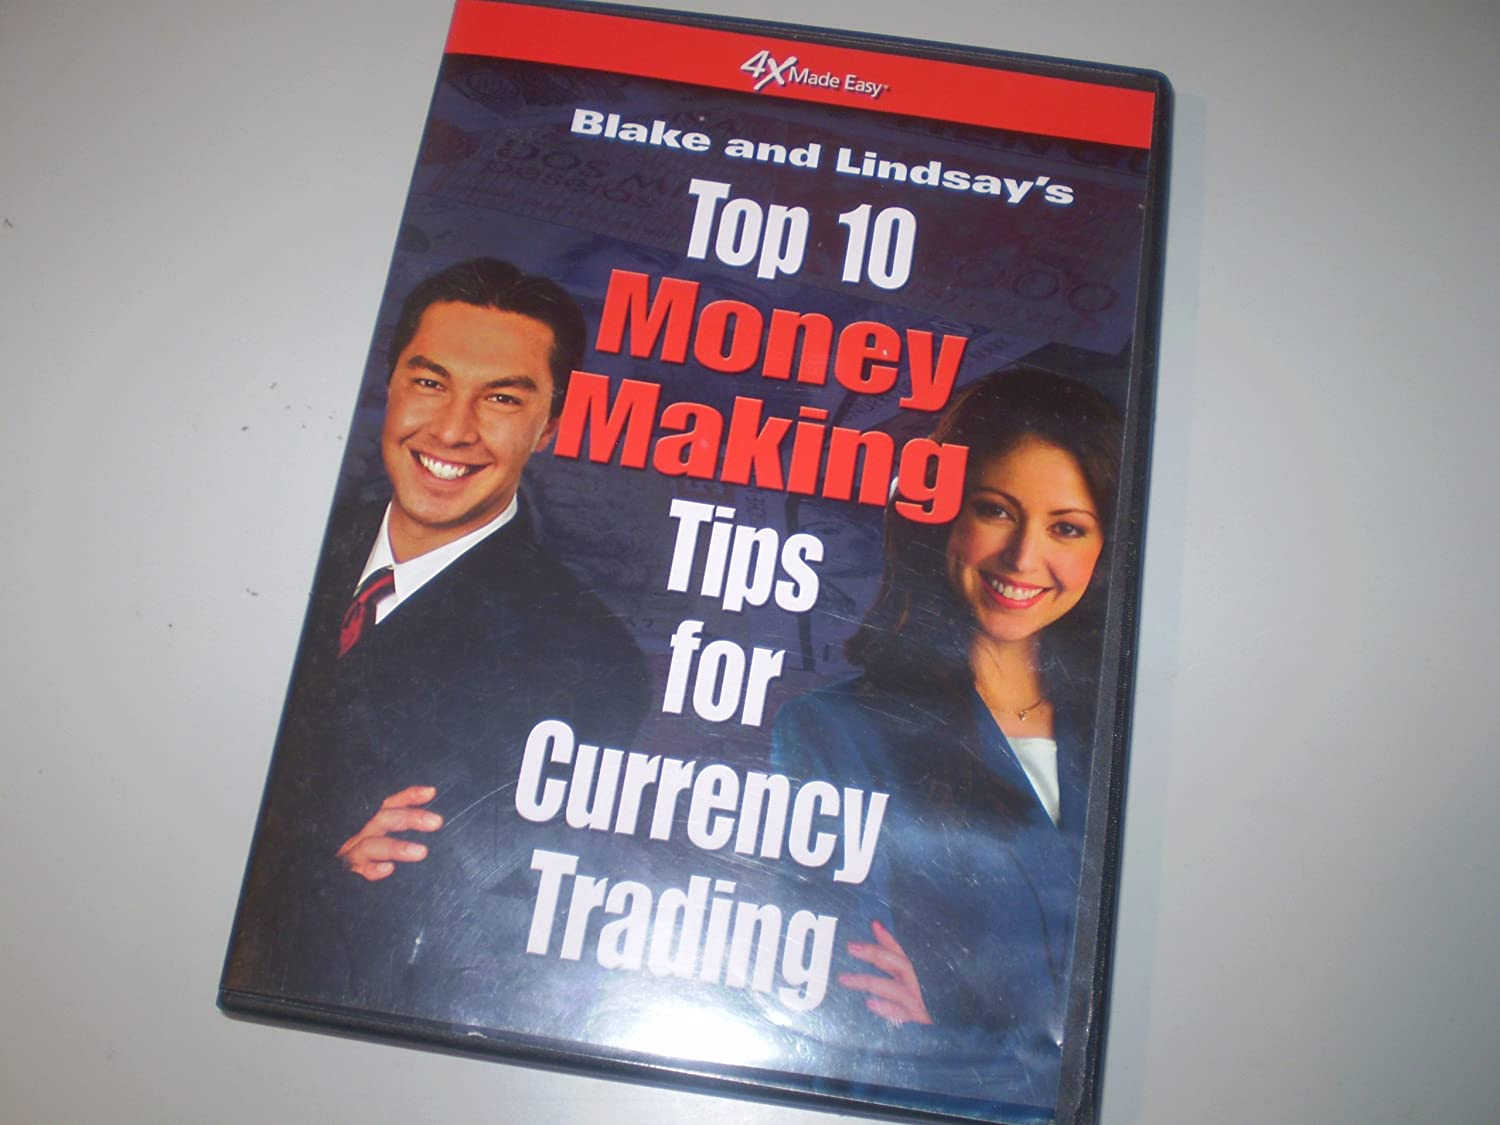 Top 10 Money Making Tips for Currency Trading with Blake and Lindsay